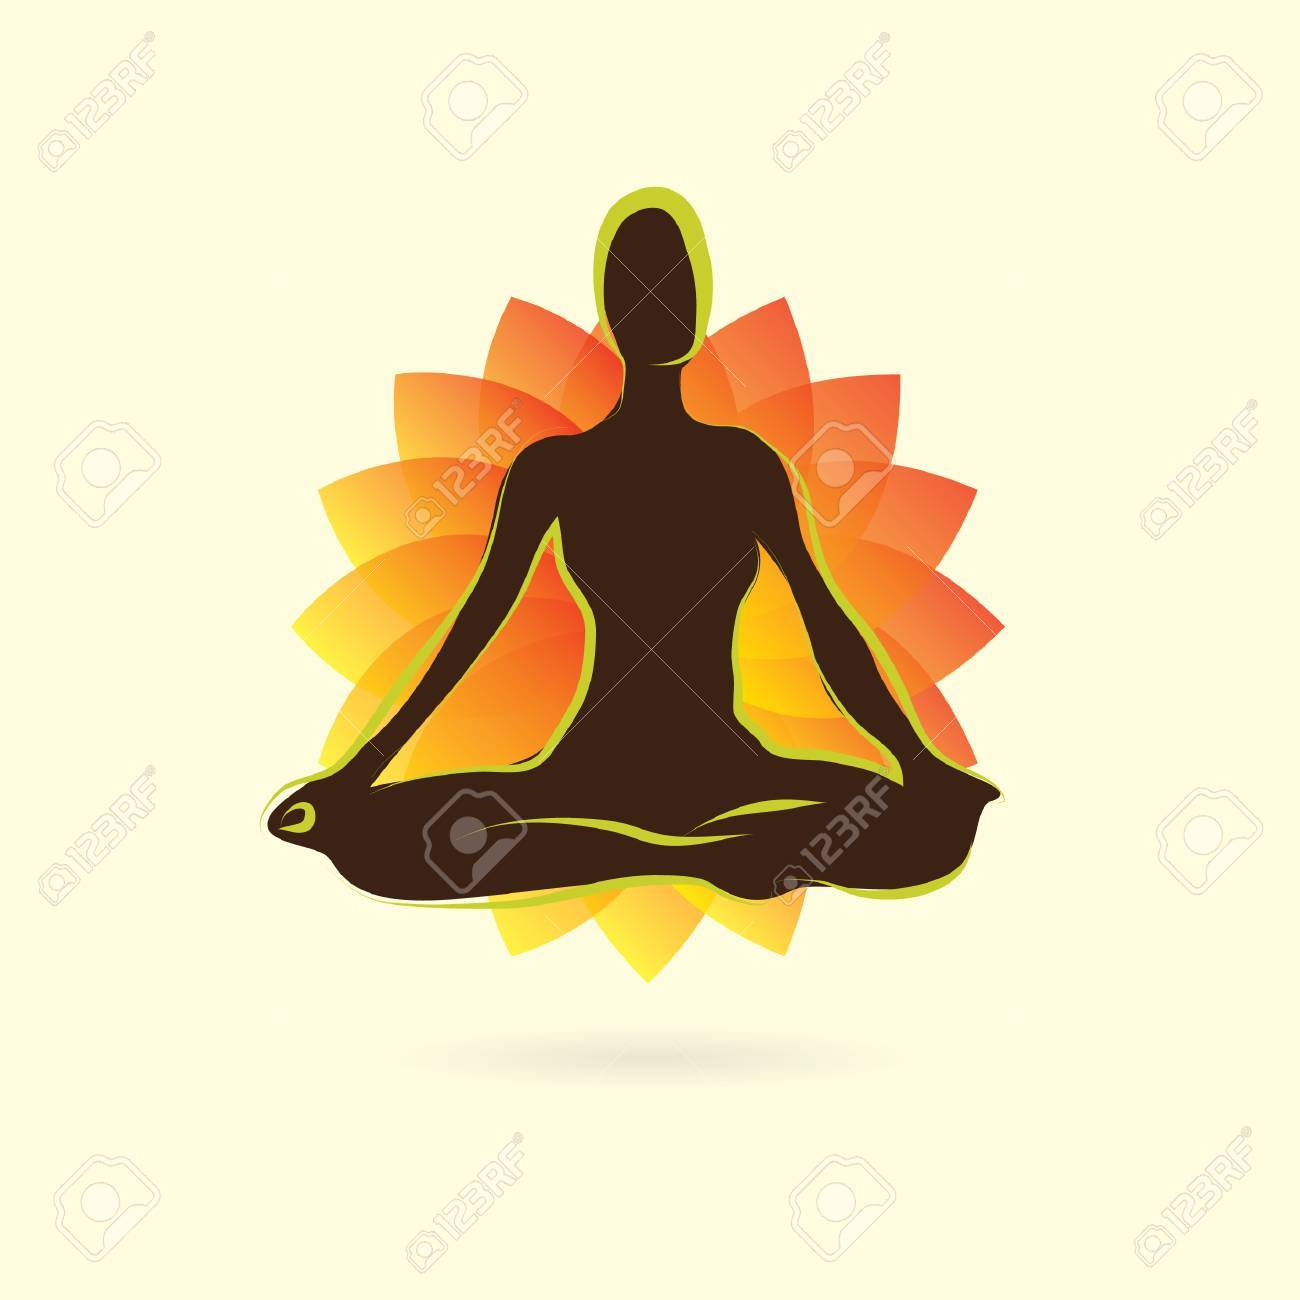 Woman Silhouette Practising Yoga In Lotus Pose Royalty Free Cliparts Vectors And Stock Illustration Image 53989748